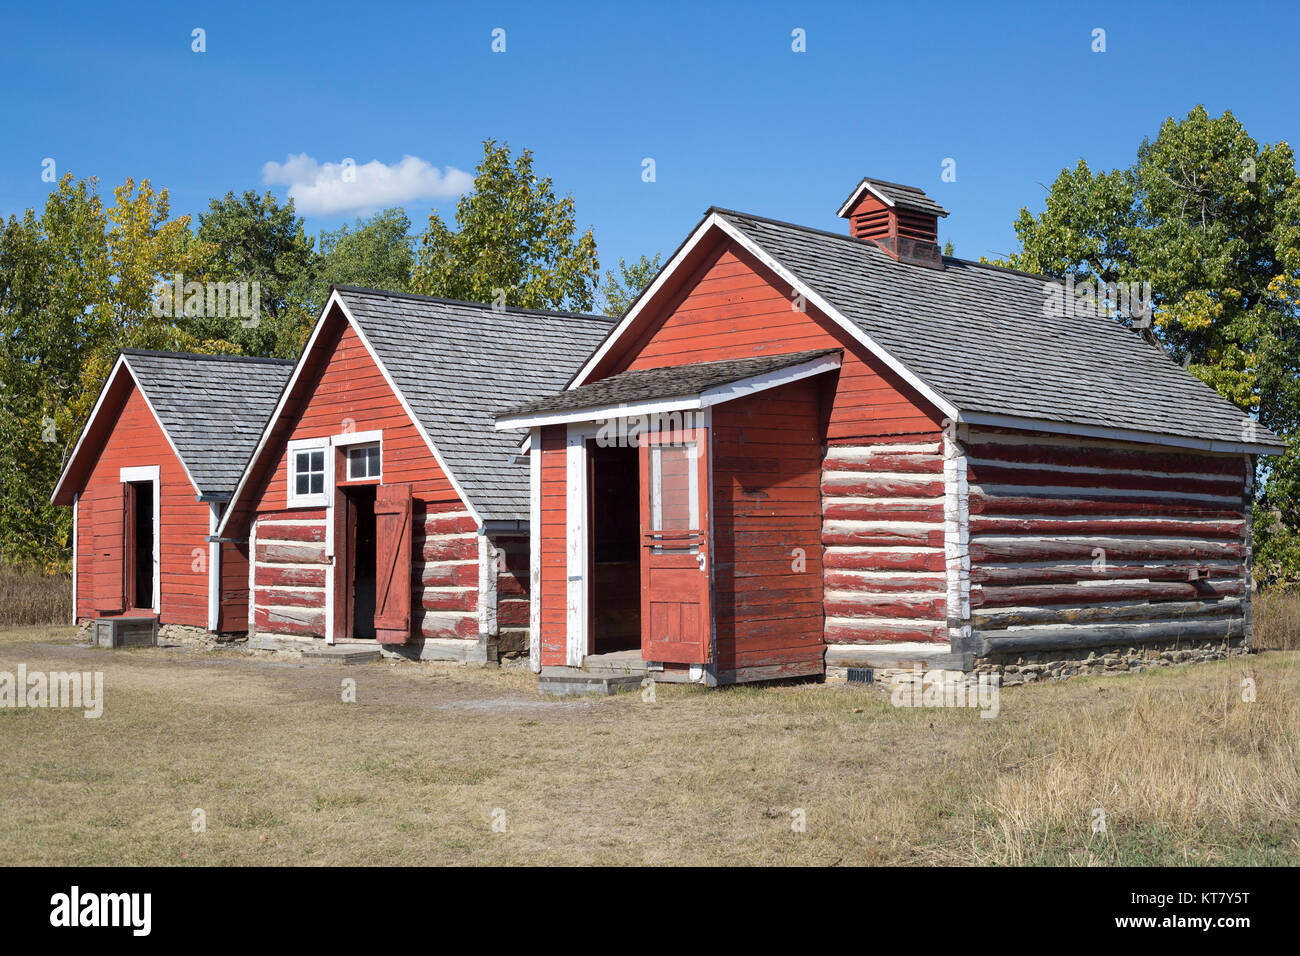 Ranch storage sheds built in the late 1800s at the Bar U Ranch - Stock Image